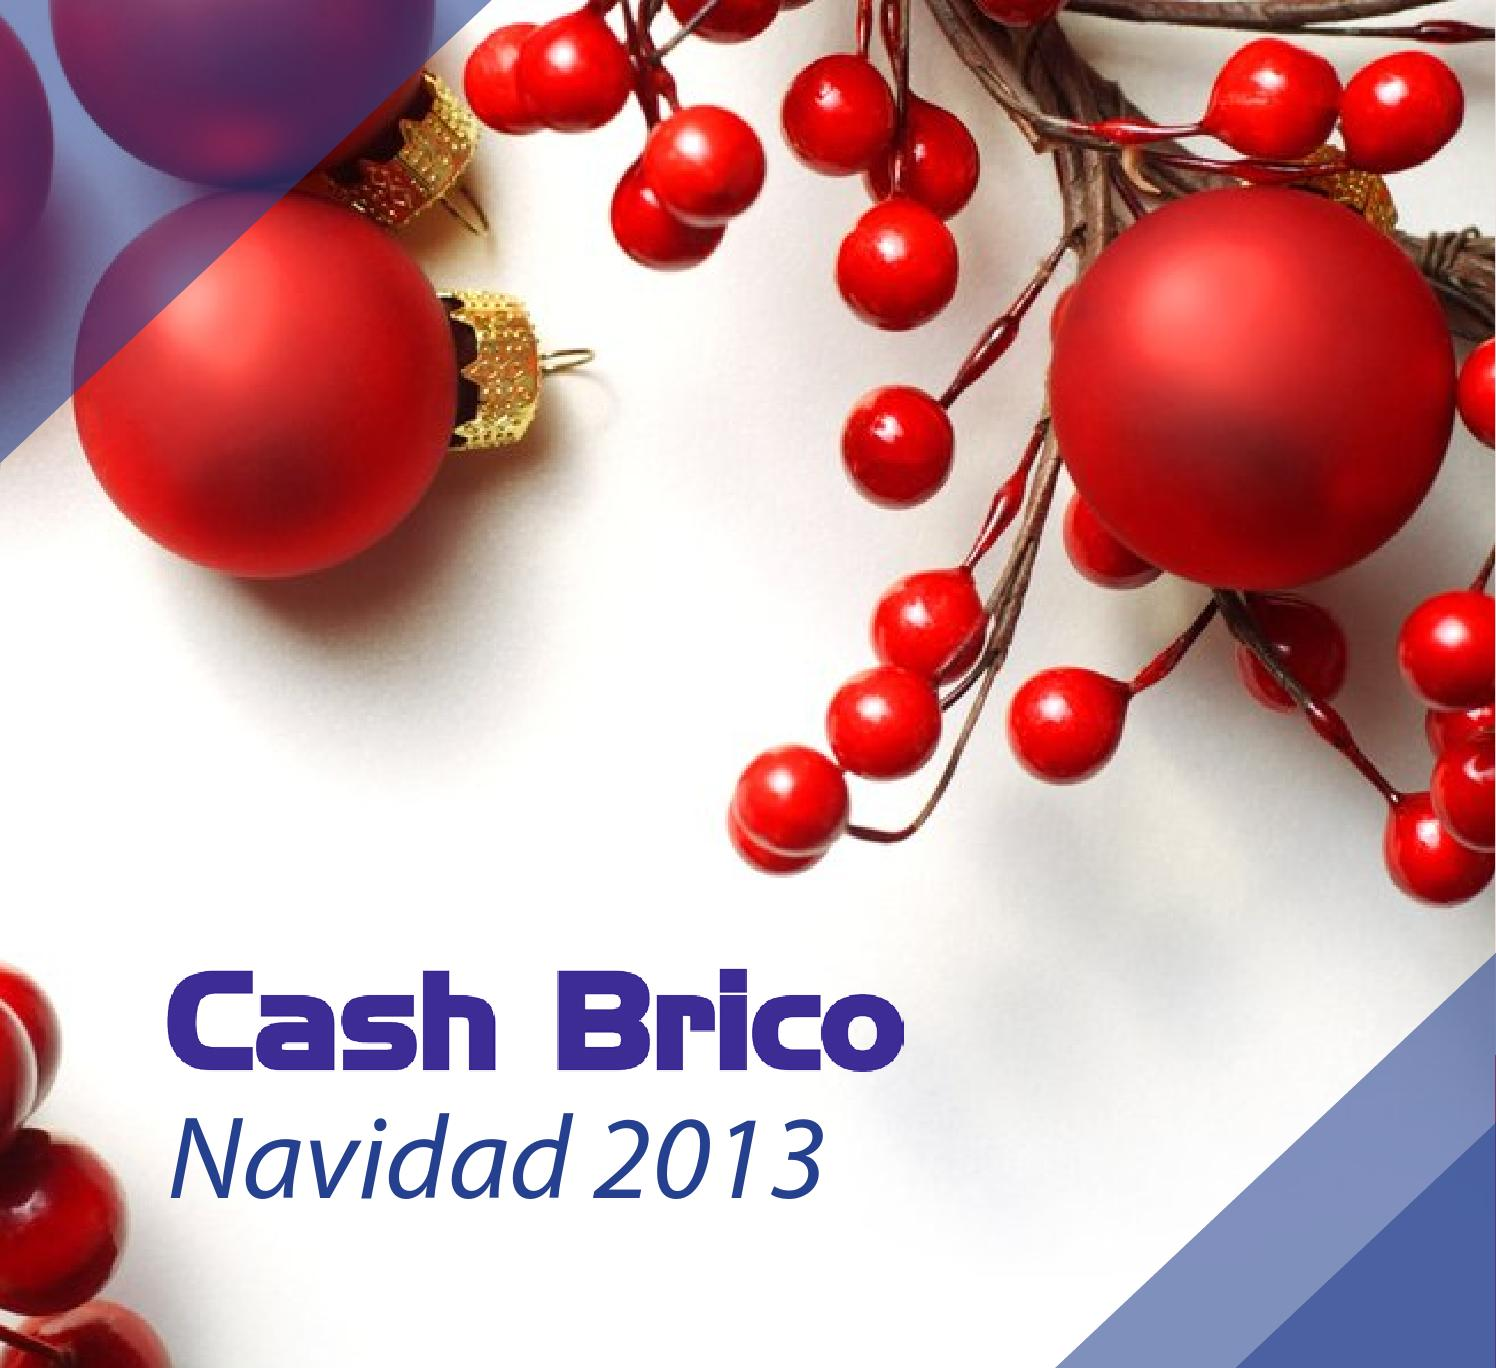 Catalogo ofertas navidad by cash brico tenerife issuu - Superchef cf100 ...